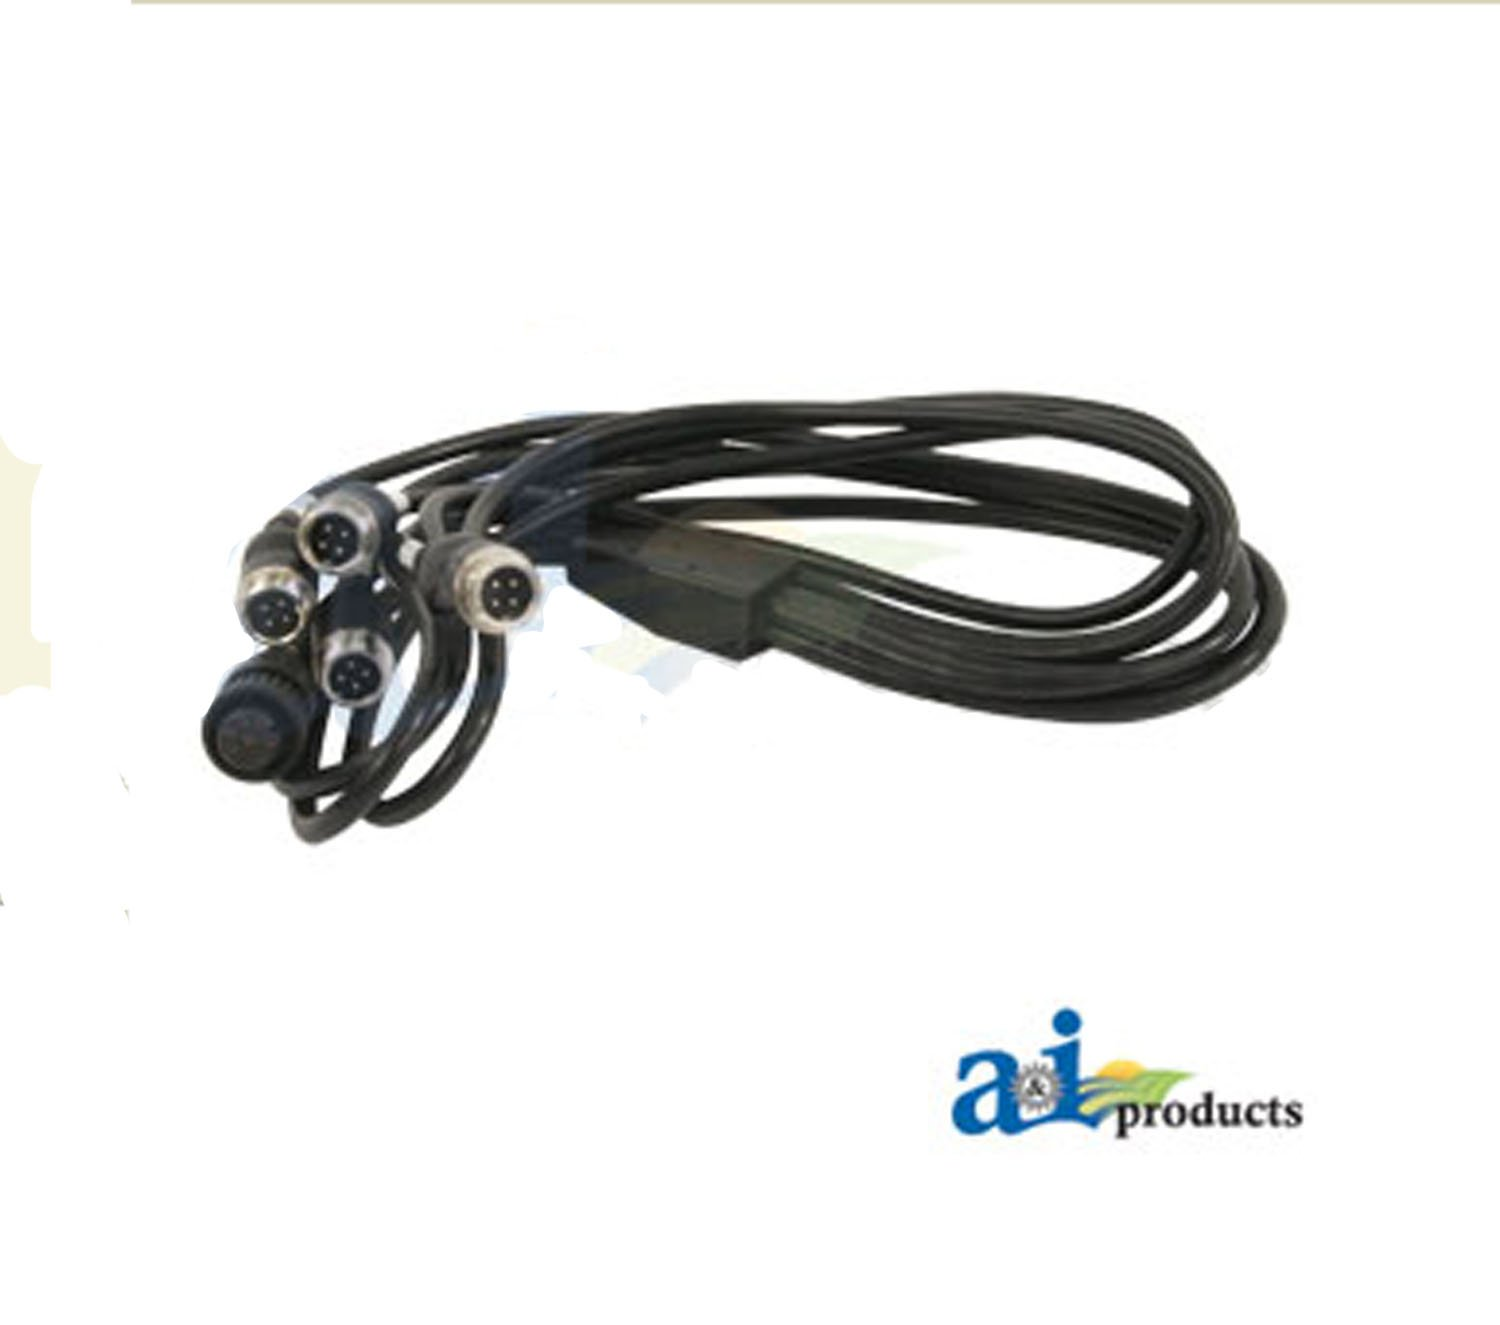 Image of Raven Viper 4 Monitor Cable Part No: A-CBL2077 Filtration